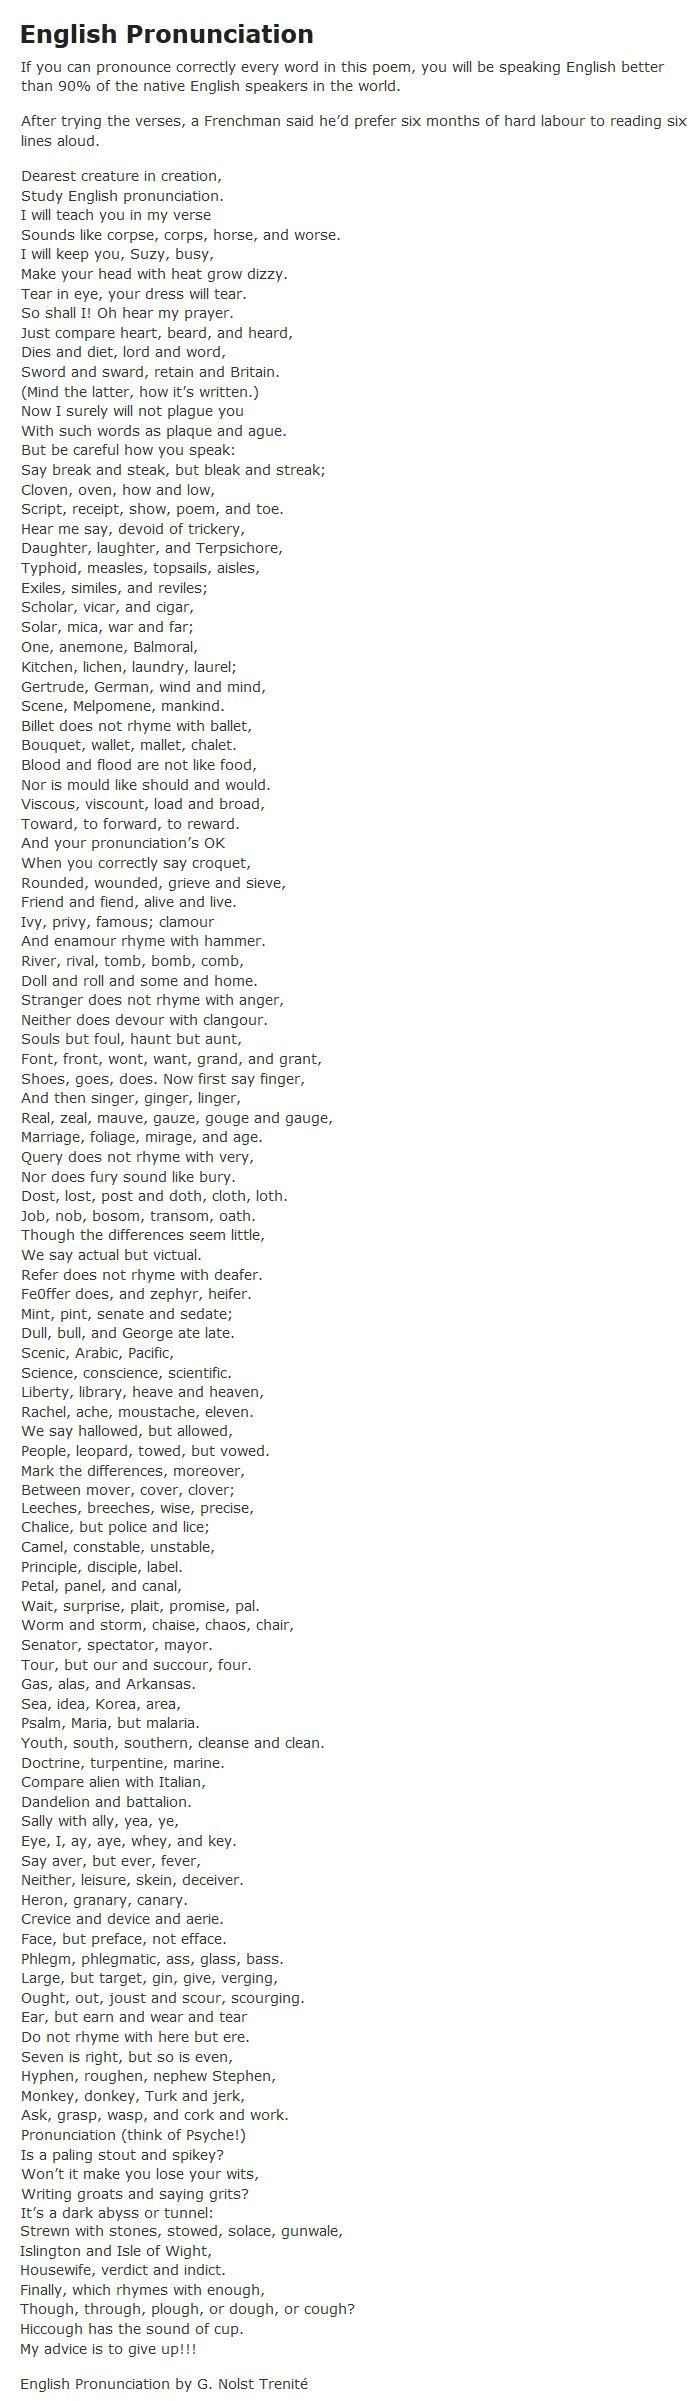 """English pronunciation- """"If you can pronounce correctly every word in this poem, you will be speaking English better than 90% of the native English speakers in the world."""" So much fun! A good end-of-year fun activity for advanced classes or ambitious ESL students :)   See more about poems, speakers and languages."""